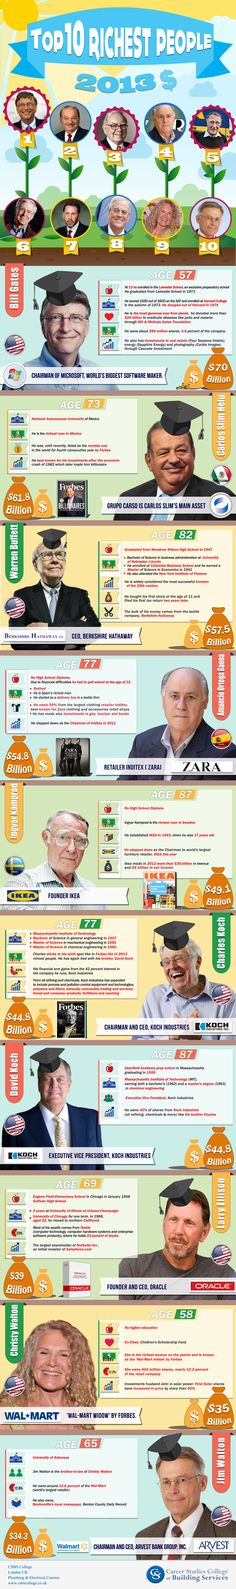 The 10 Richest People in the World - http://dashburst.com/infographic/richest-people-in-the-world/